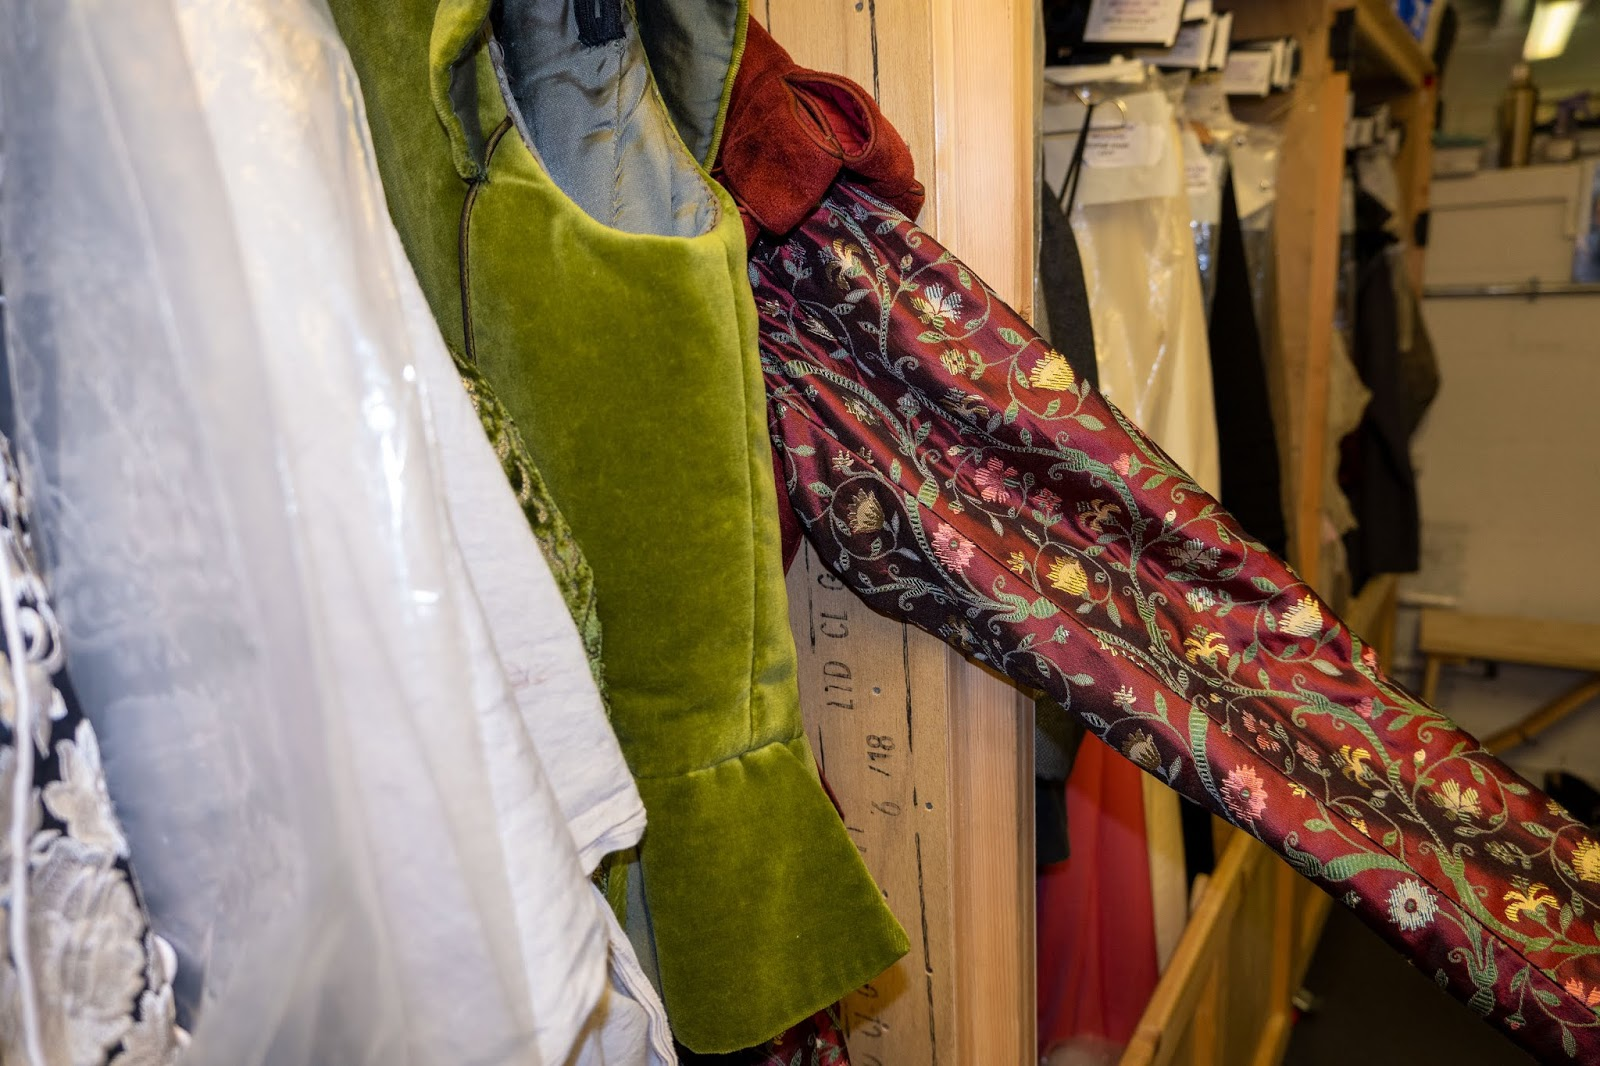 Royal Shakespeare Company costumes at The Marlowe Theatre, Canterbury